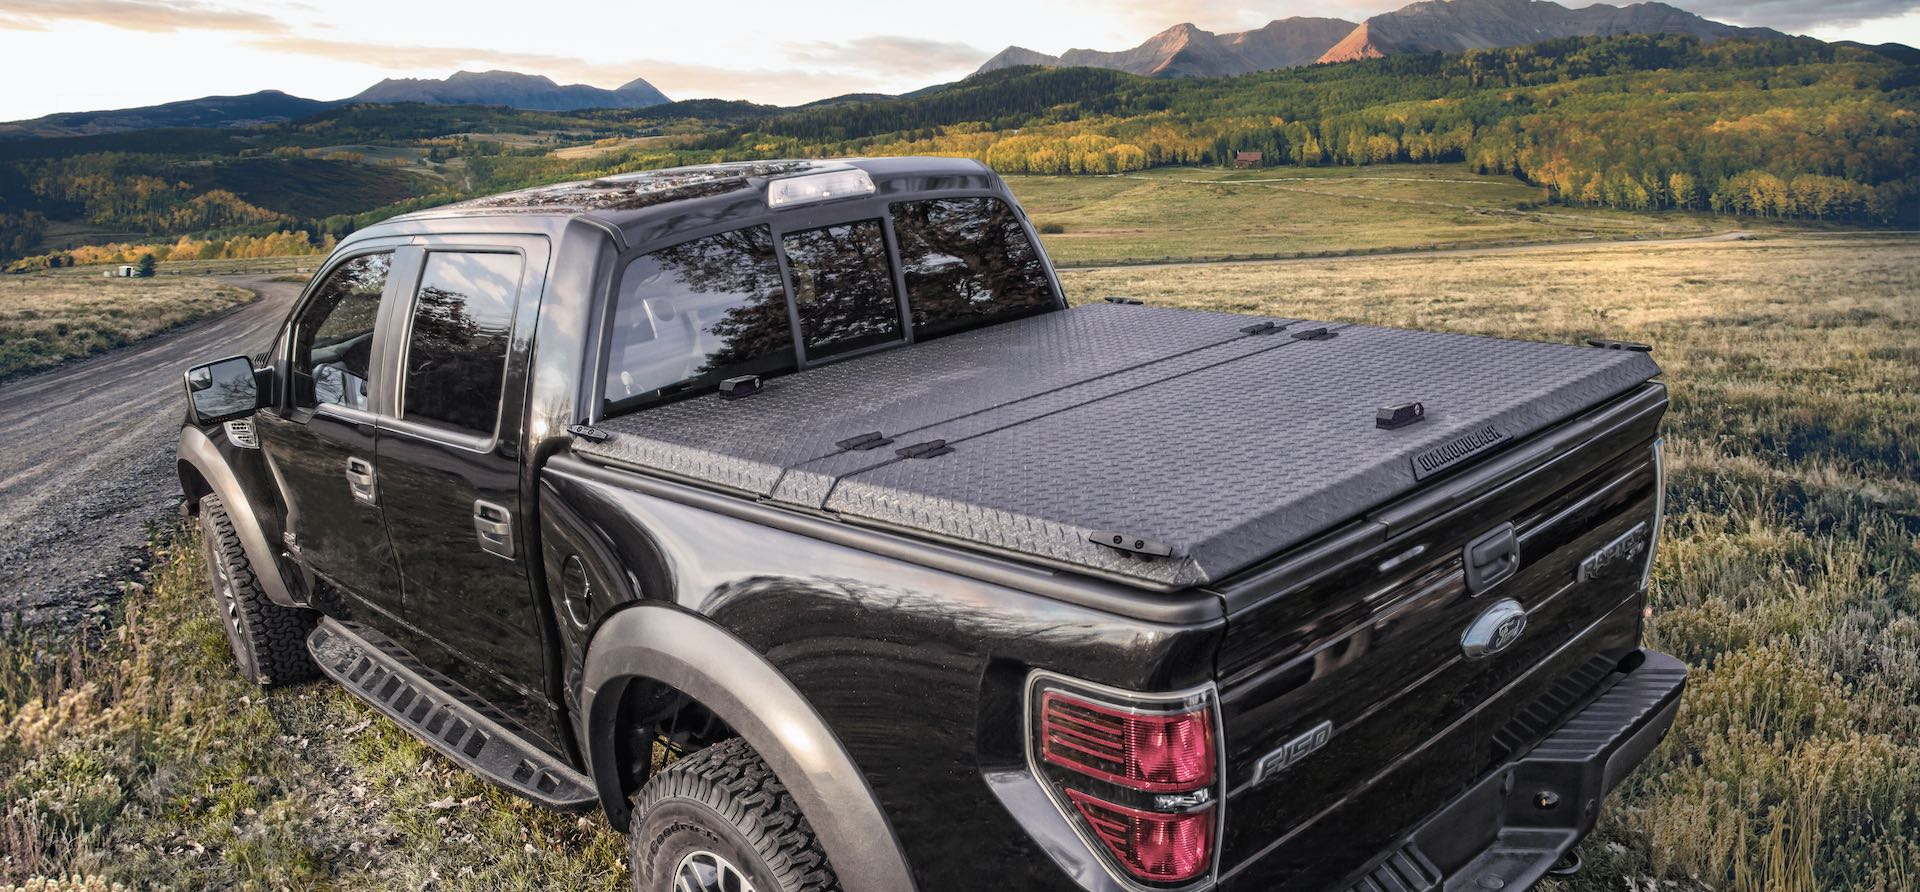 DiamondBack SE rugged metal bed cover on Ford F-150 Raptor